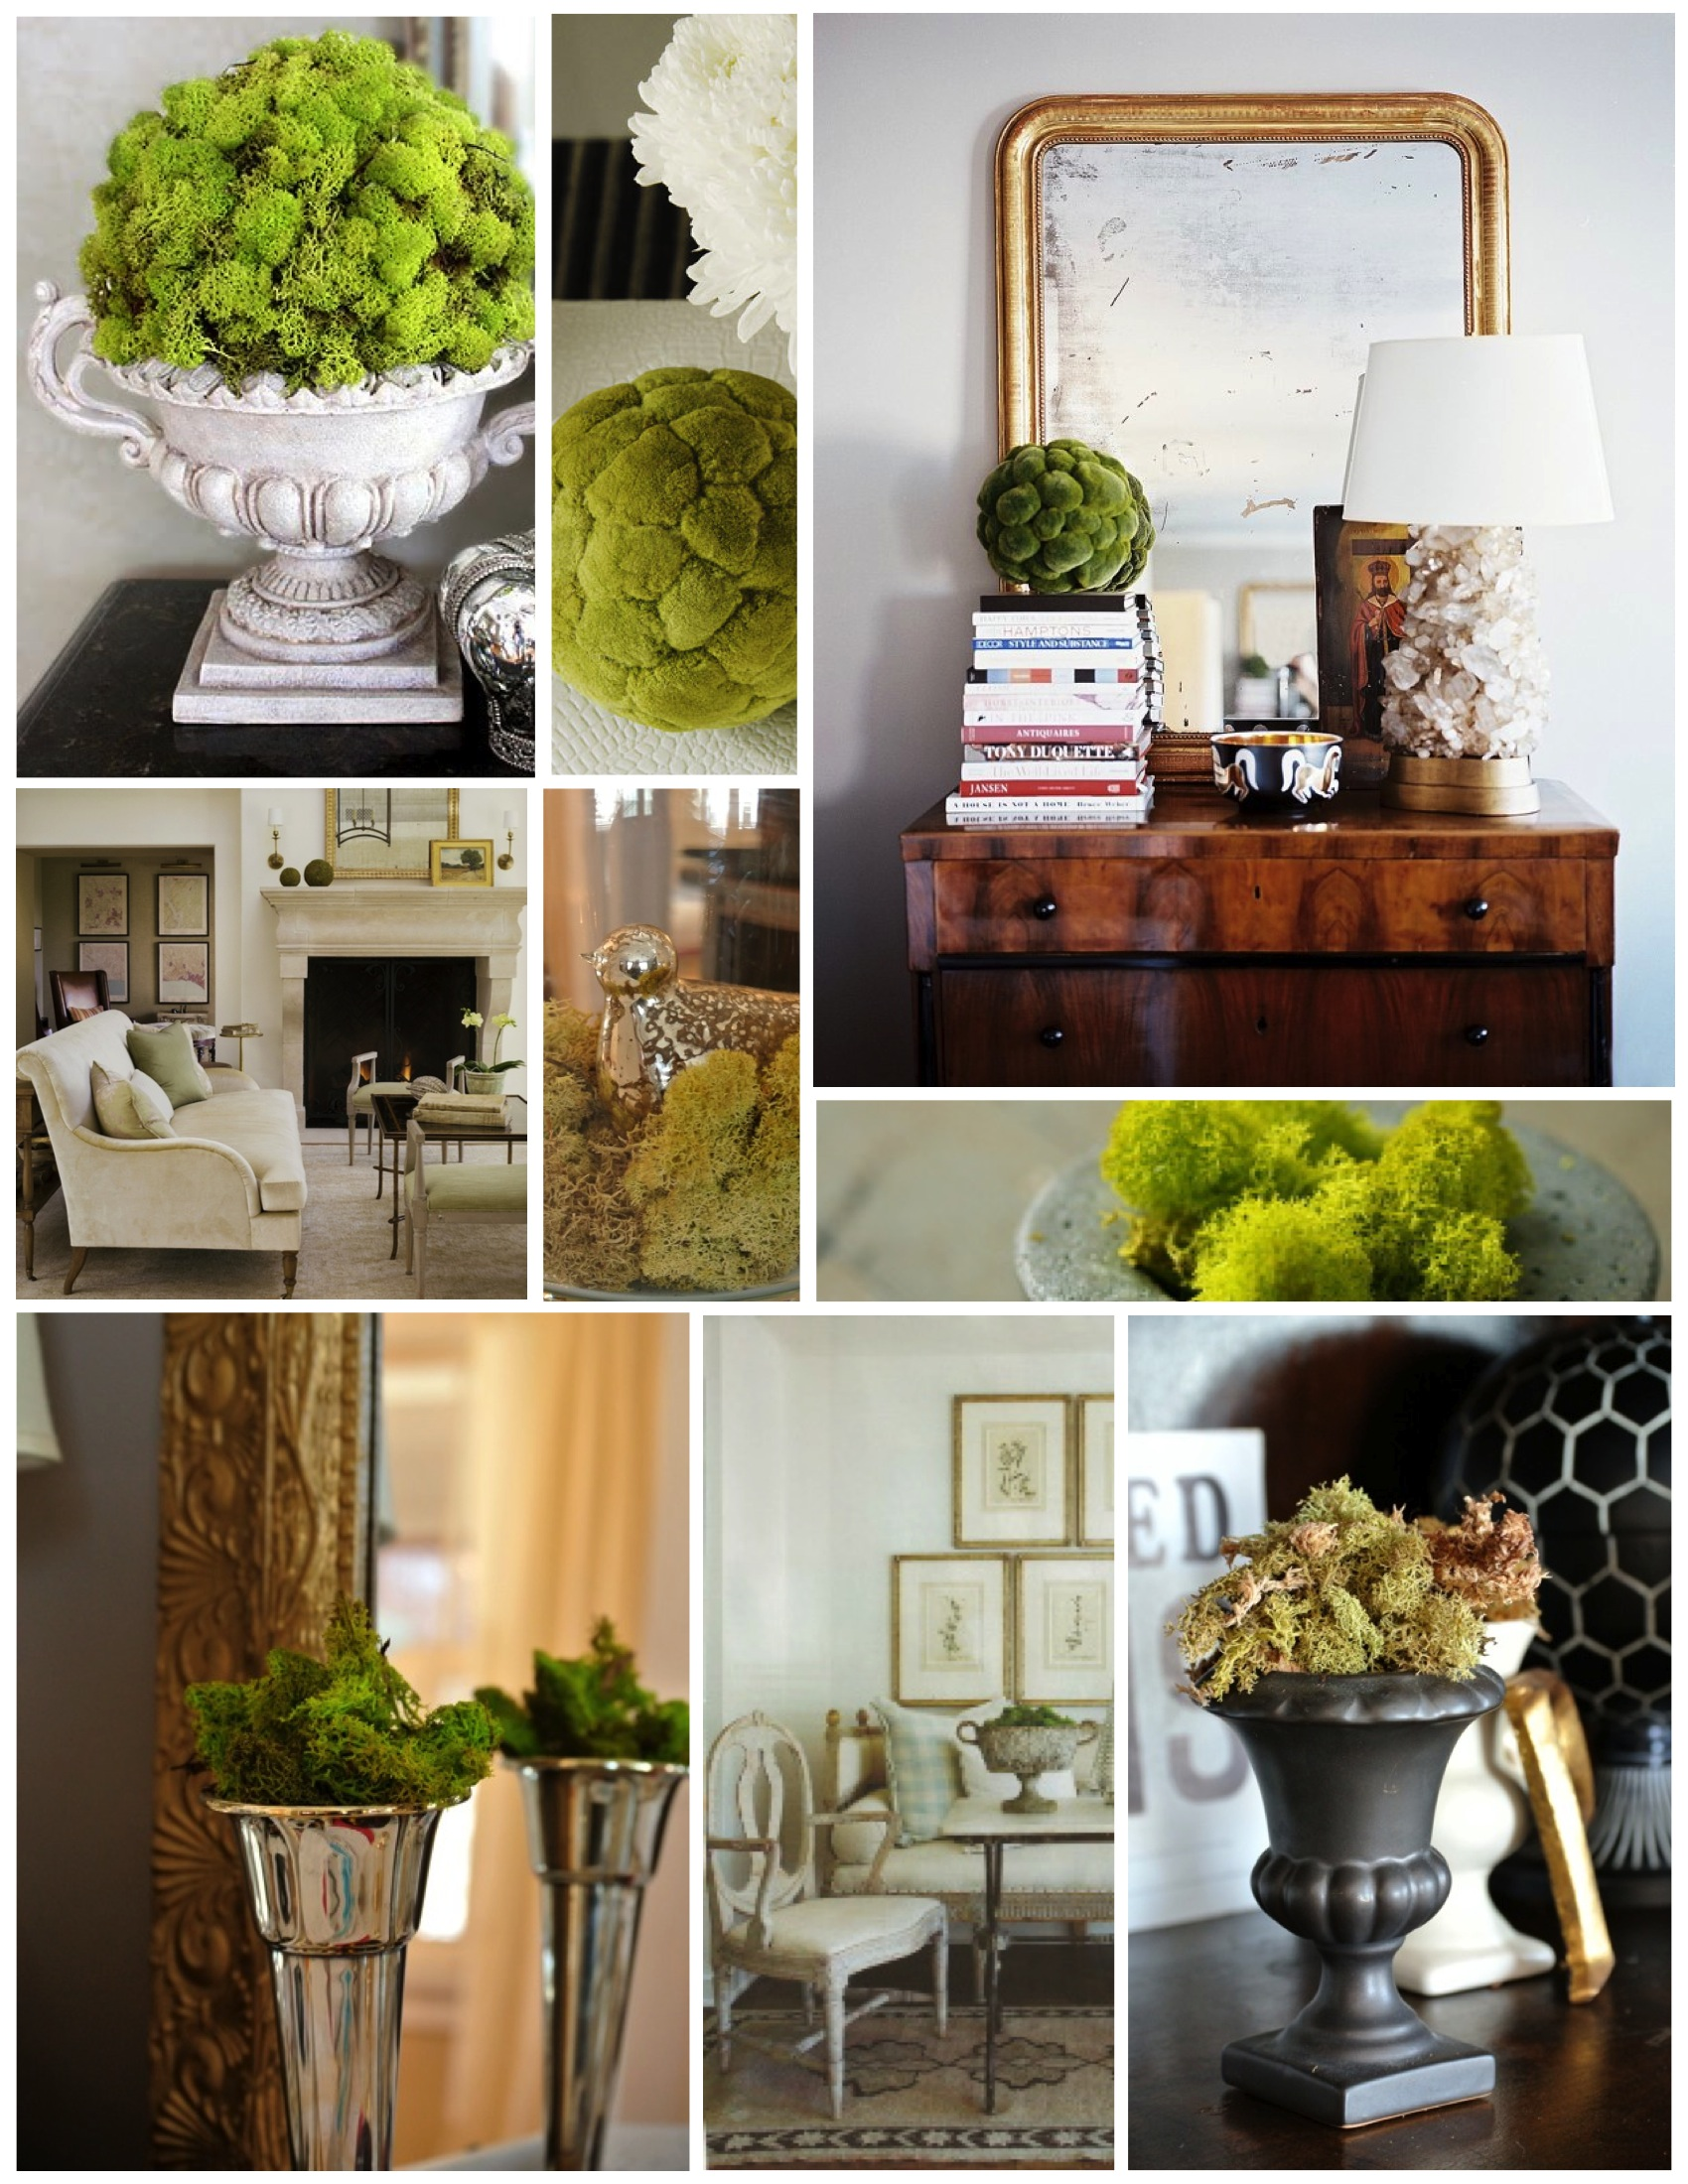 Natural Arrangements Of Green Moss Within The Interior House Appeal